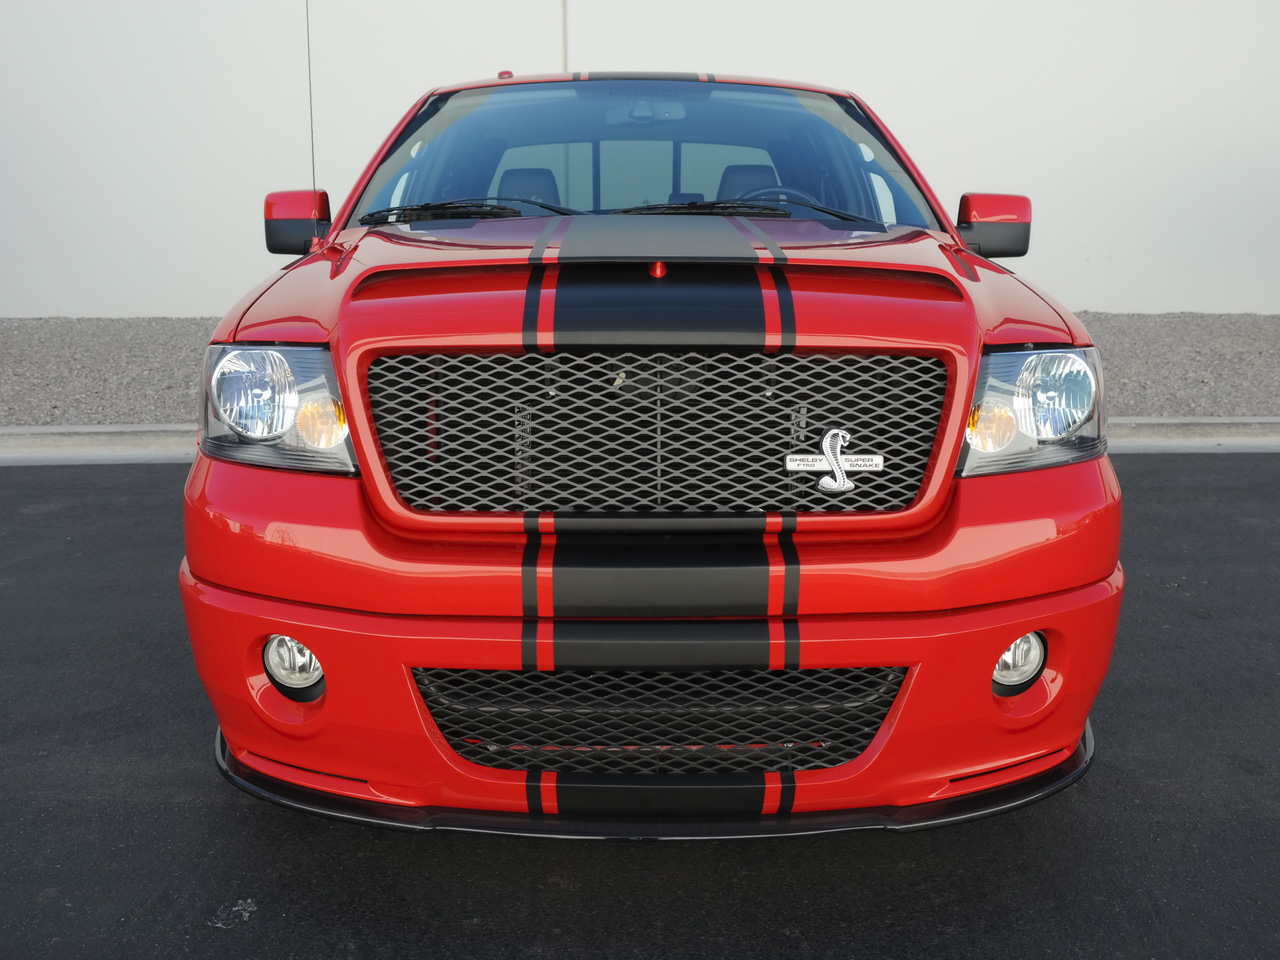 2010 Shelby Super Snake Ford F150 front 480